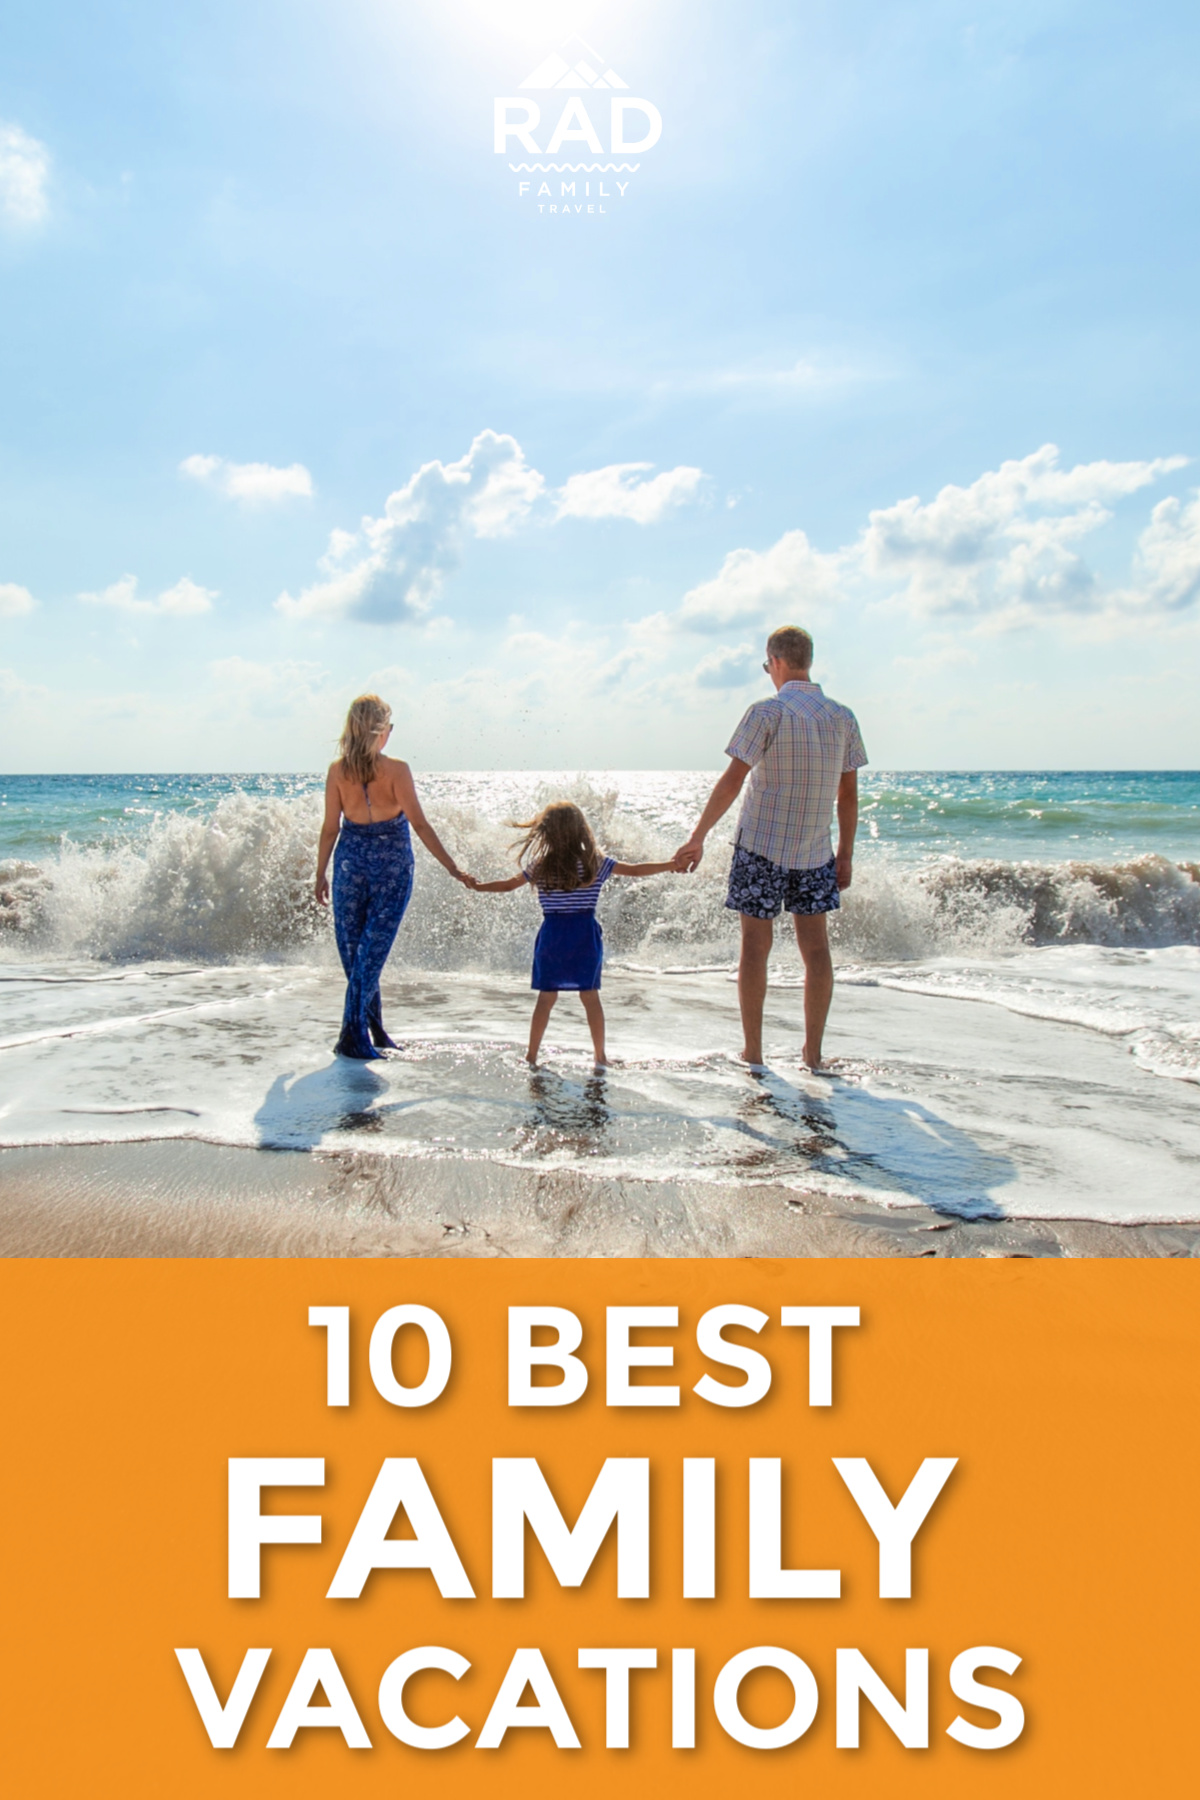 10-best-family-vacations